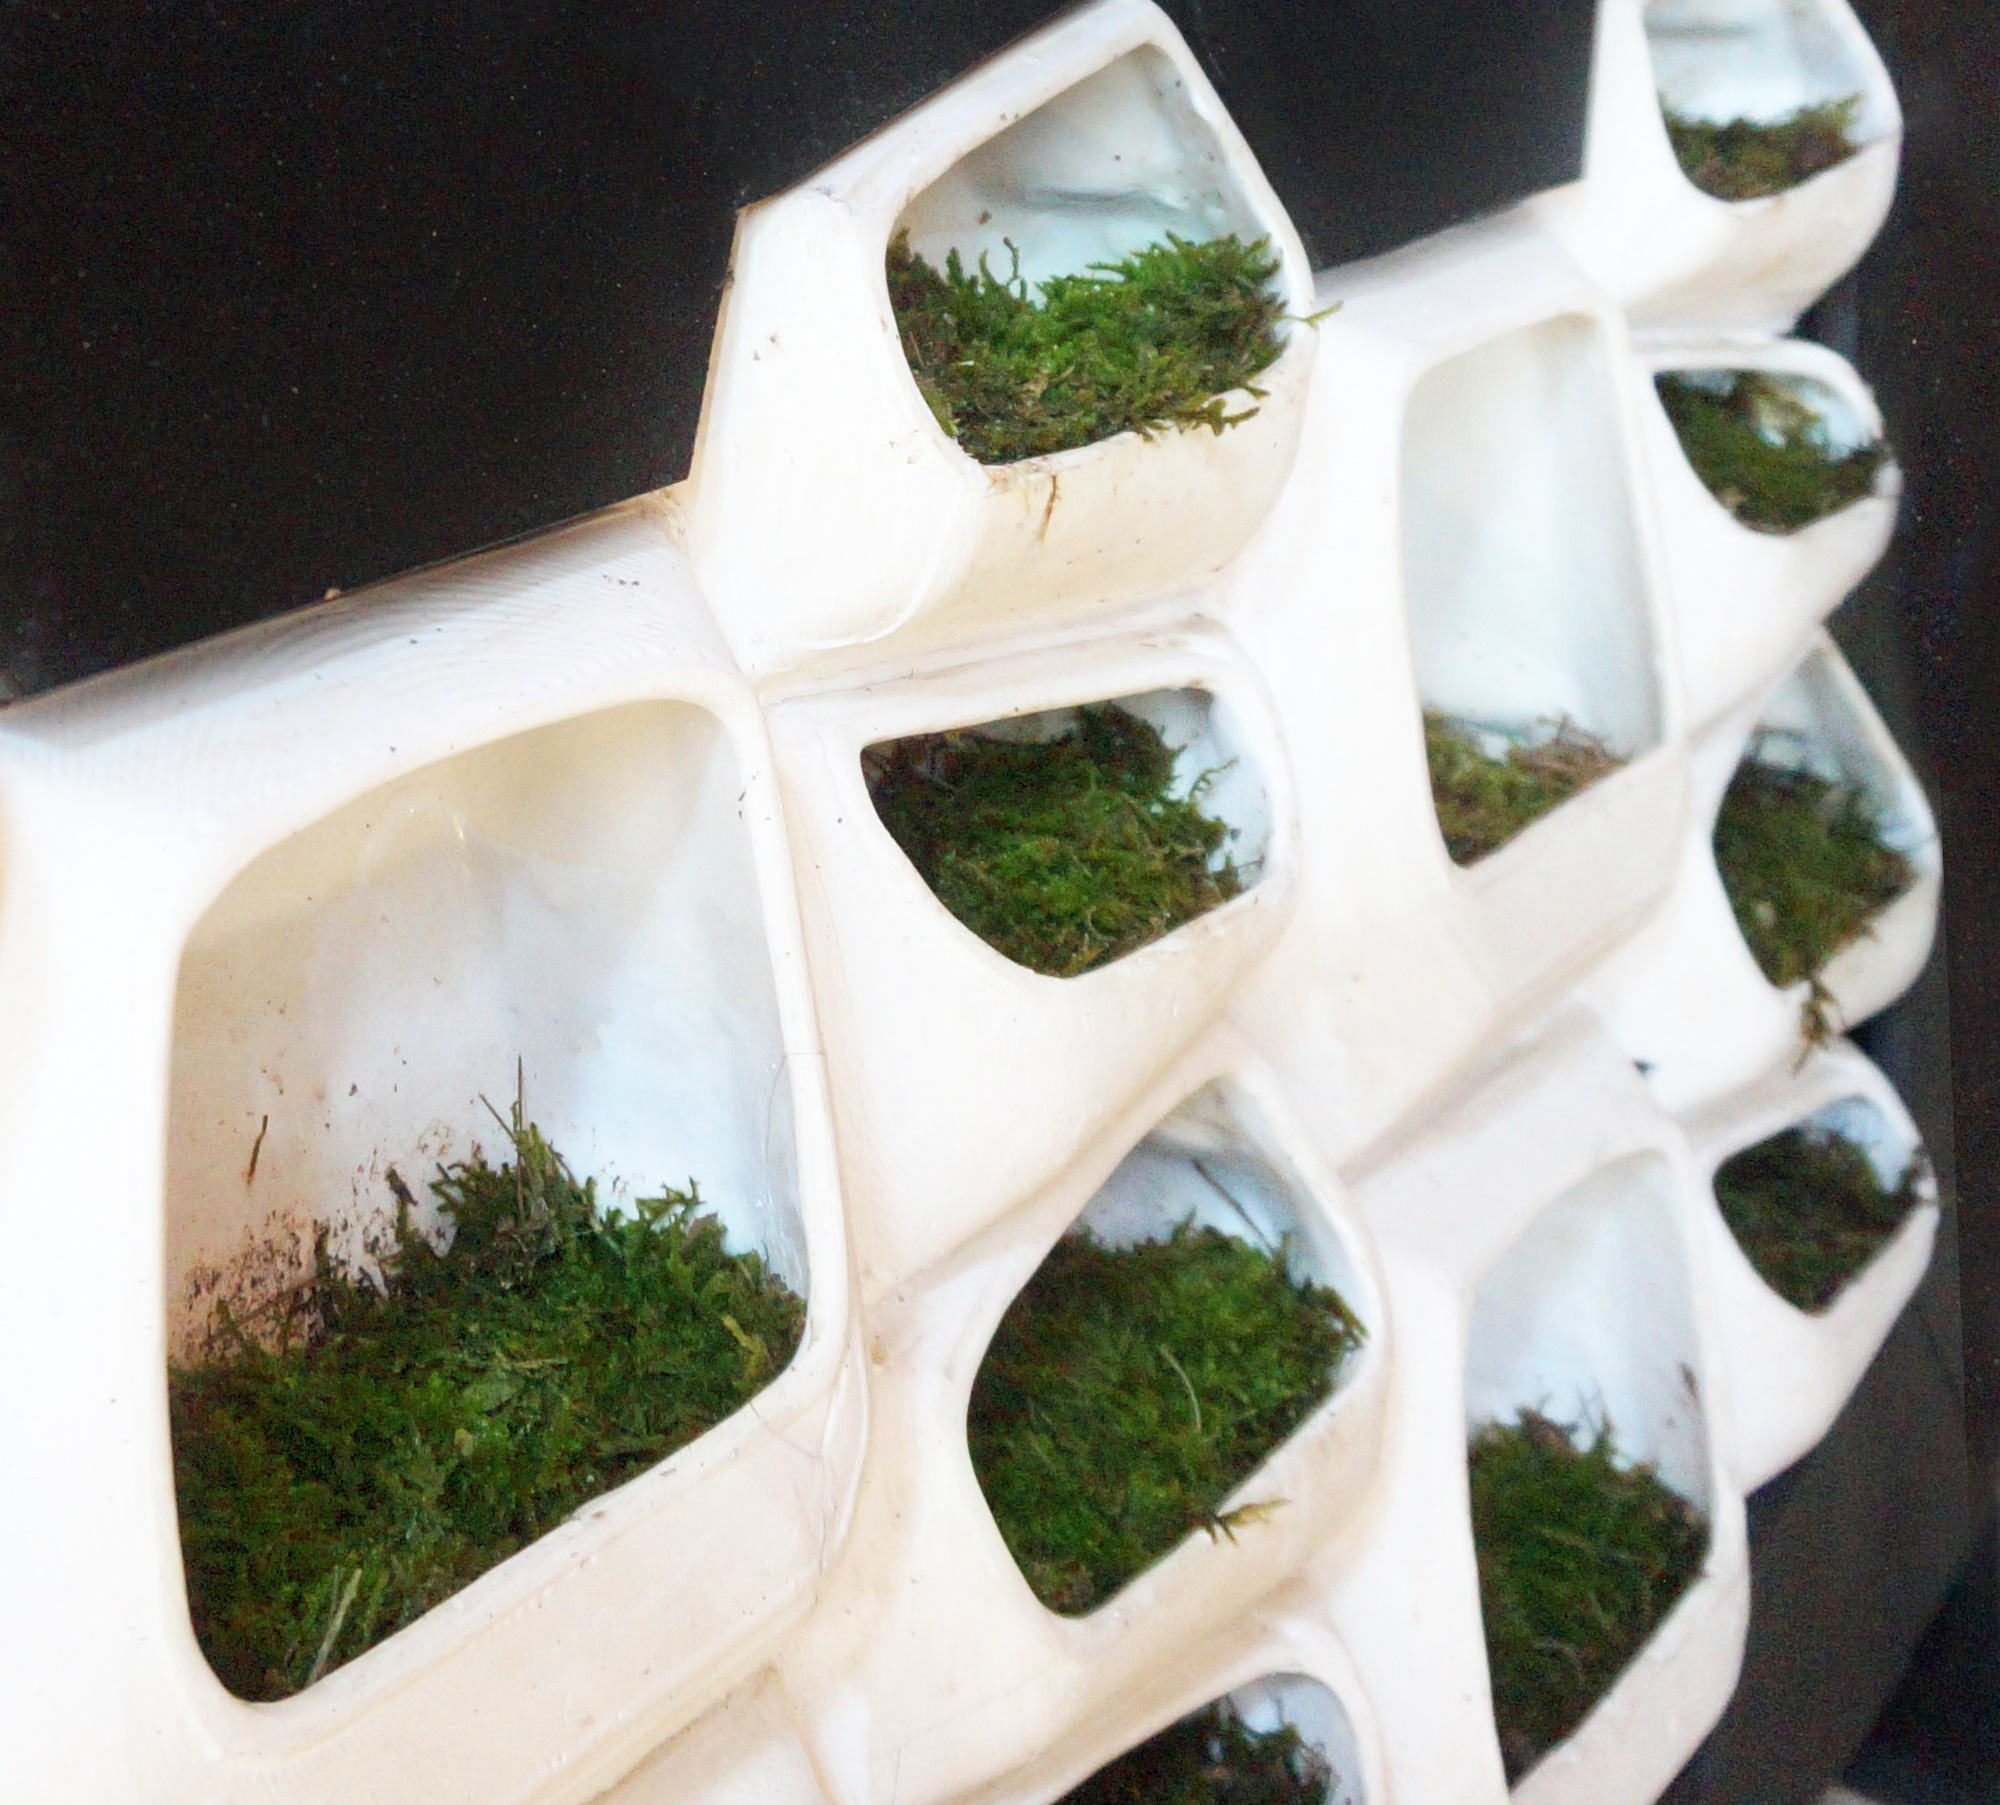 This modular green wall system generates electricity from for Green wall system